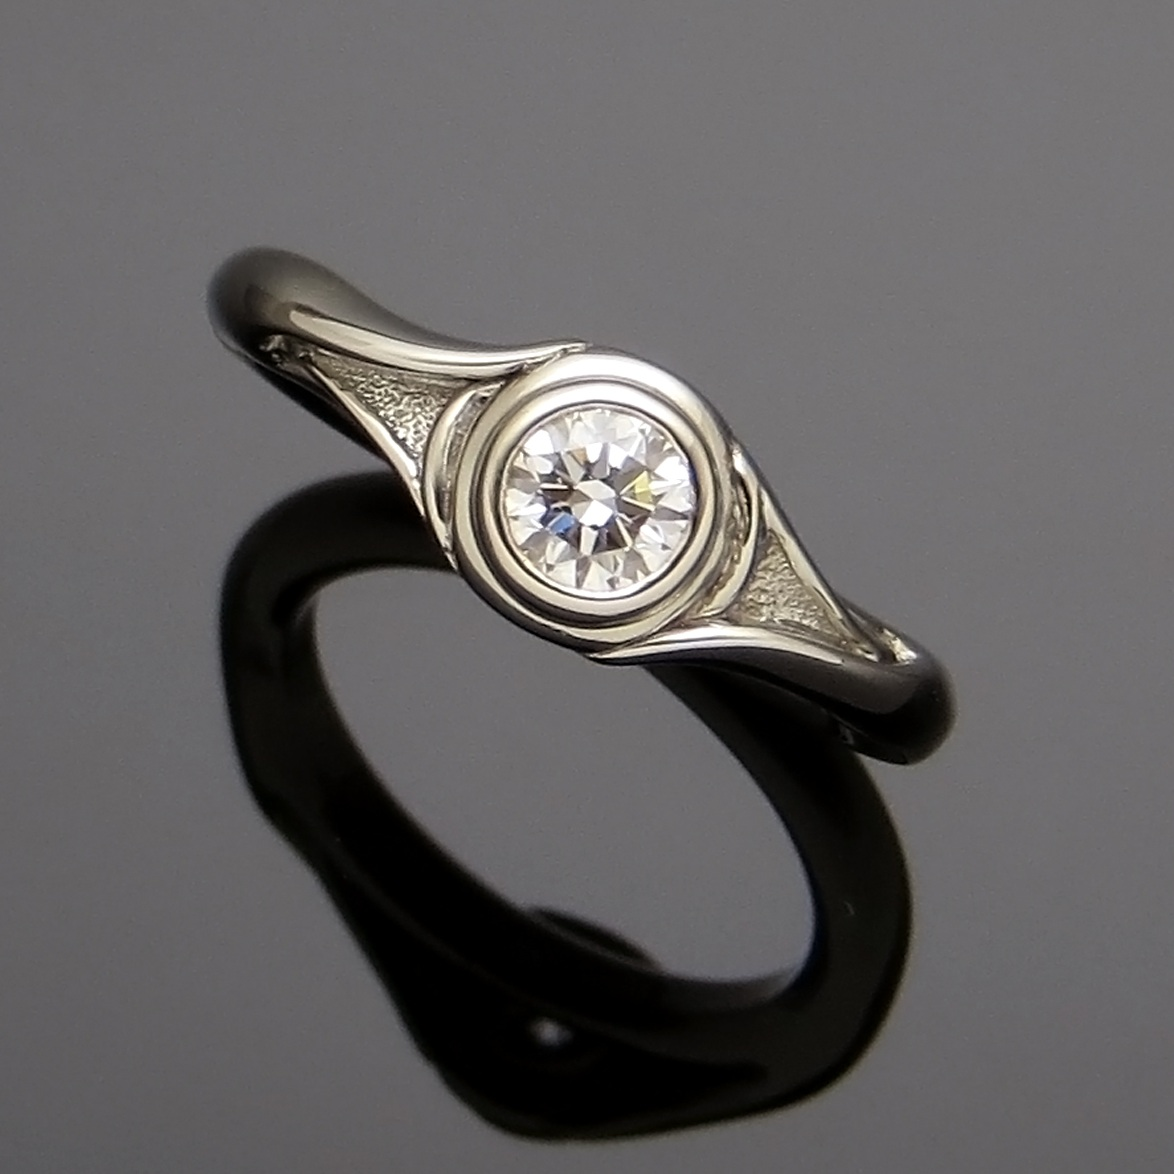 handcrafted 14k white gold engagement ring with bezel-set round brilliant diamond